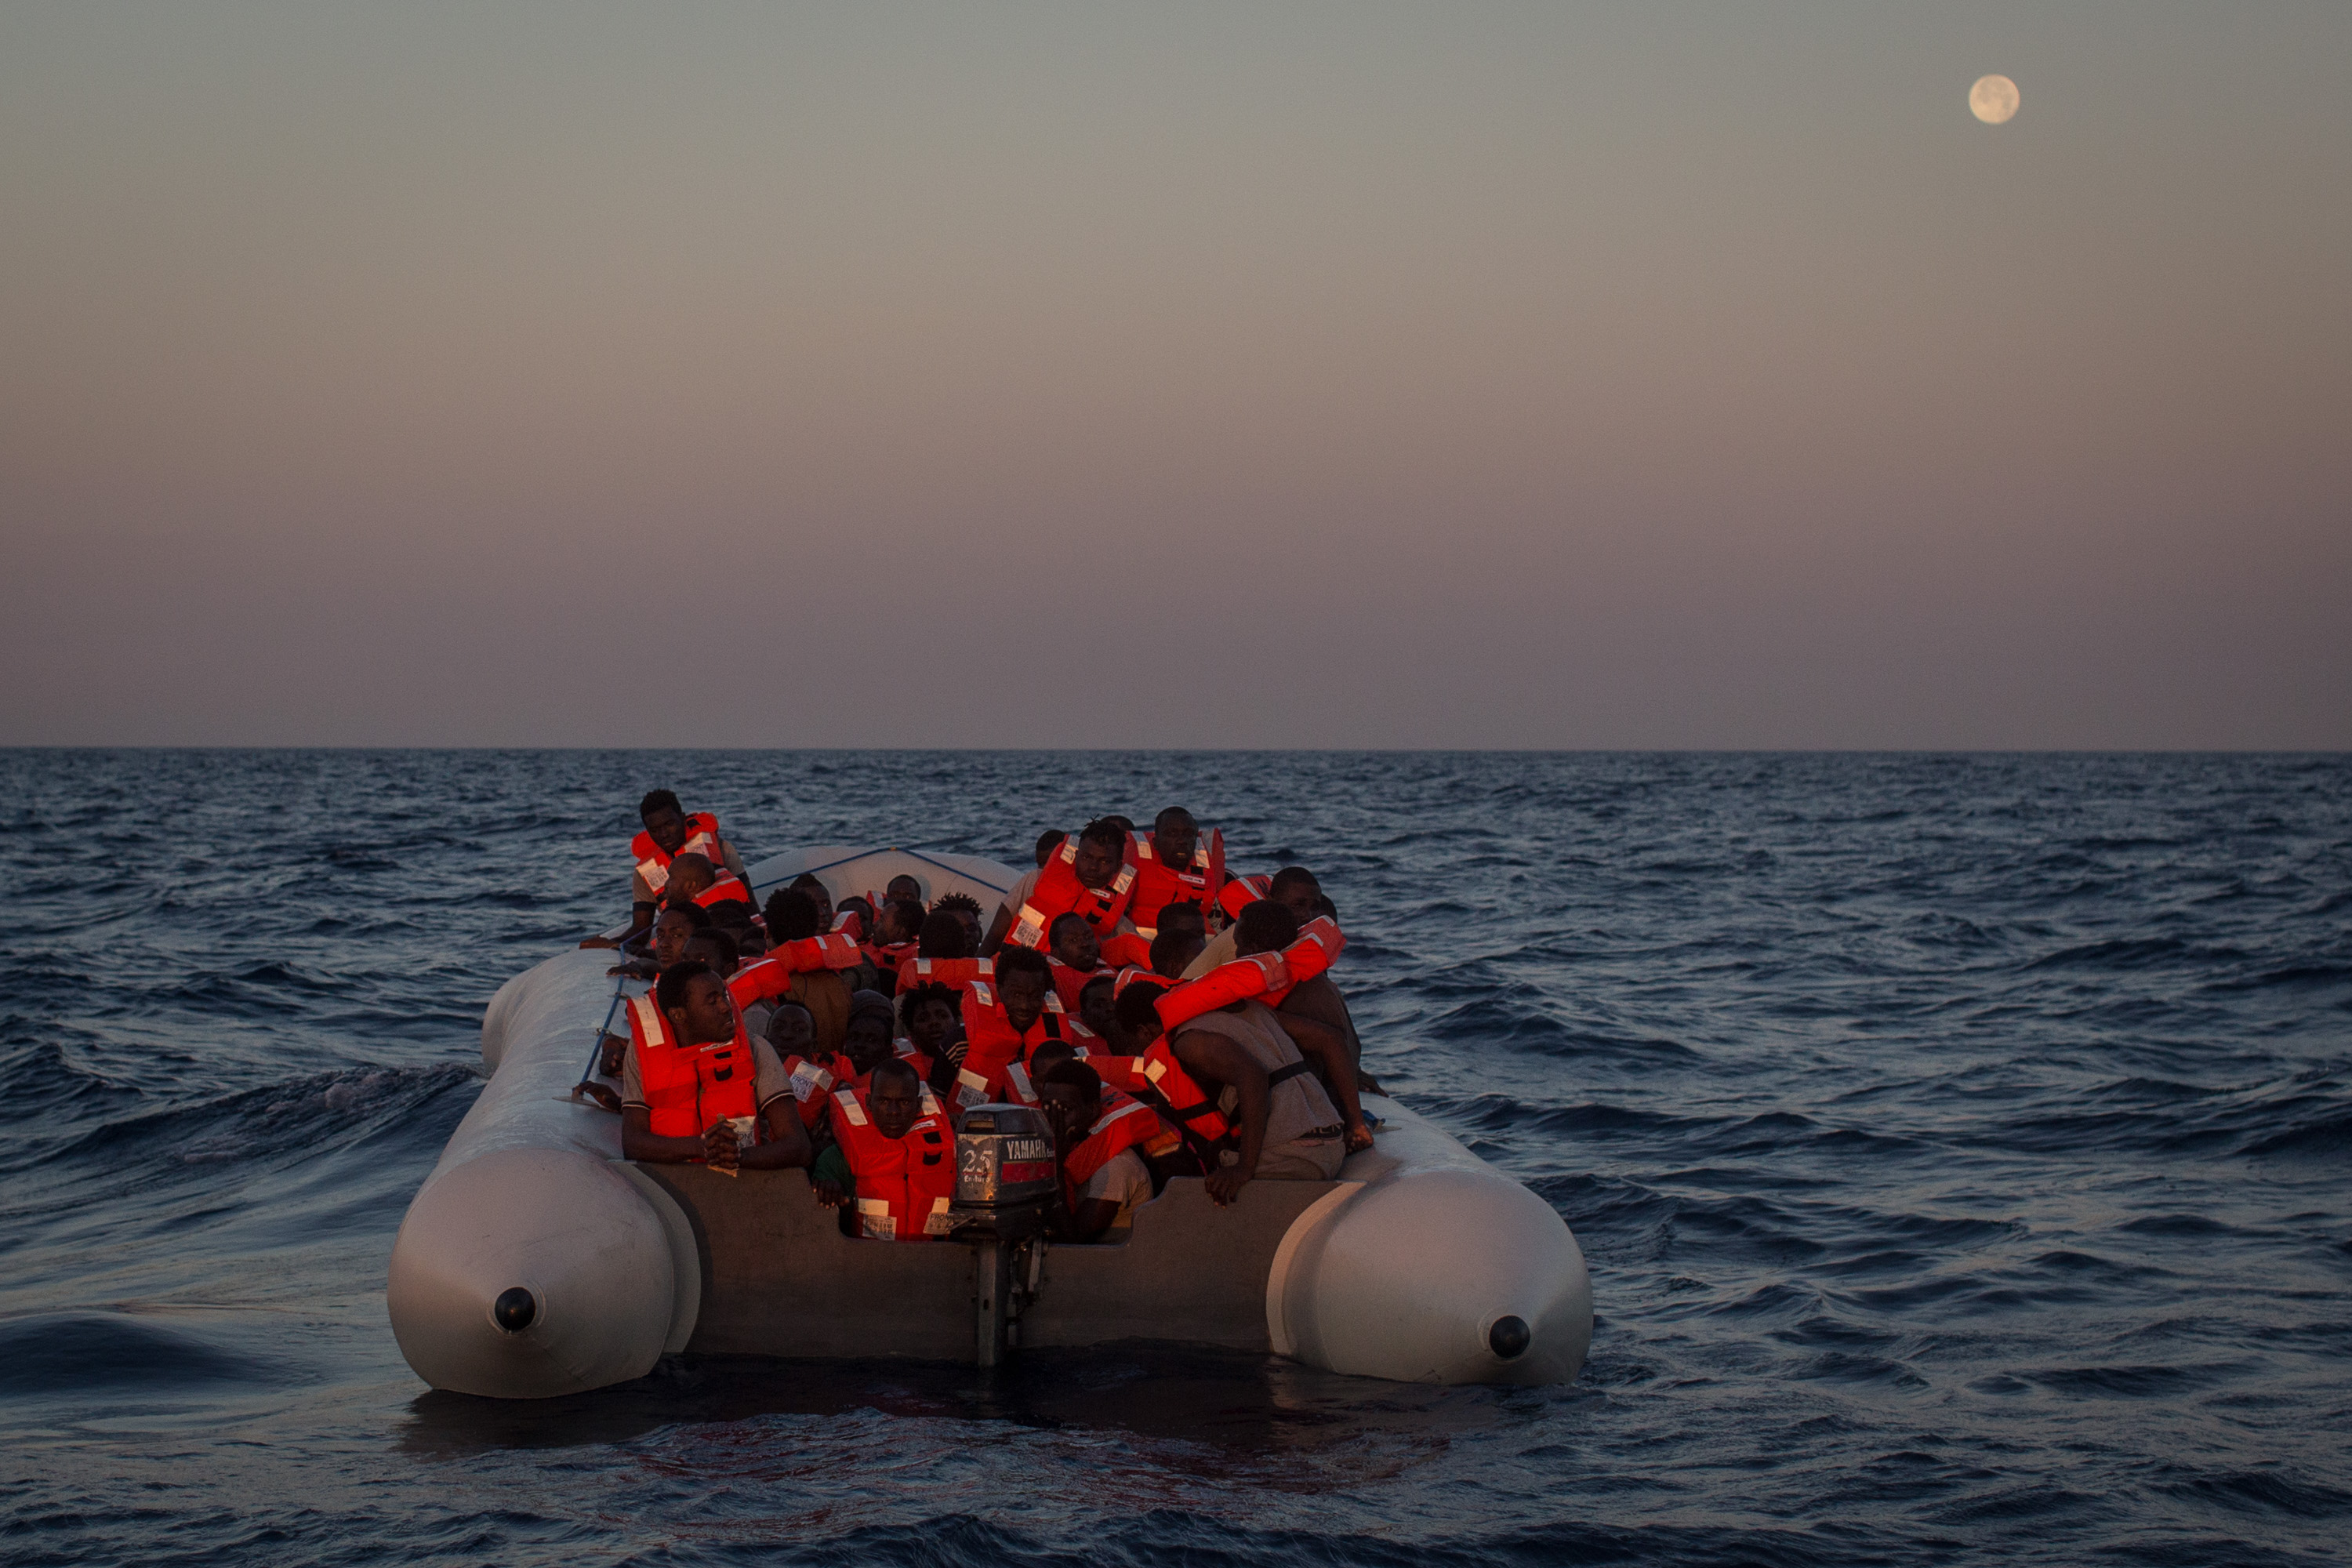 Refugees and migrants wait in a small rubber boat to be rescued by crew members from the Migrant Offshore Aid Station (MOAS) Phoenix vessel on June 10, 2017 off Lampedusa, Italy.